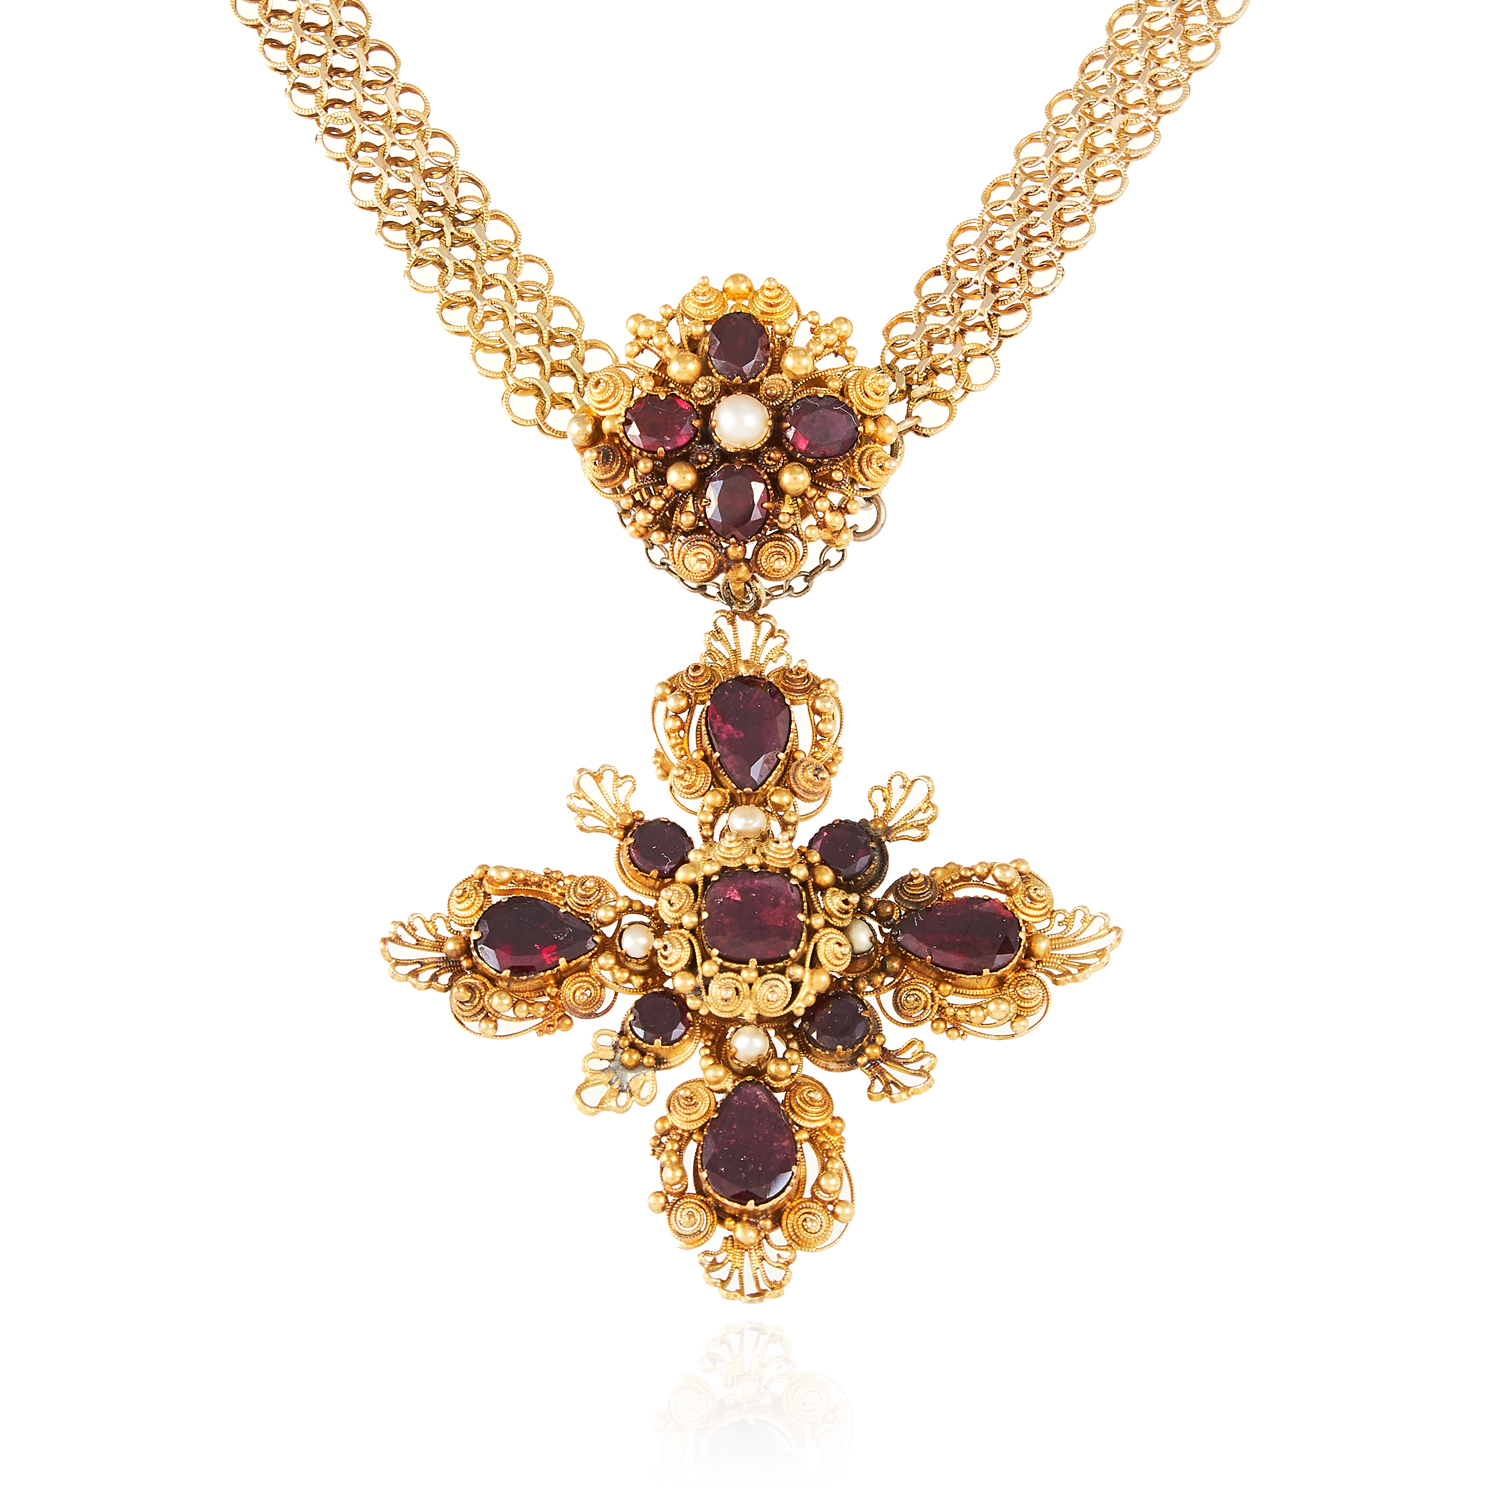 AN ANTIQUE ALMANDINE GARNET AND PEARL CROSS PENDANT NECKLACE, 19TH CENTURY in high carat yellow